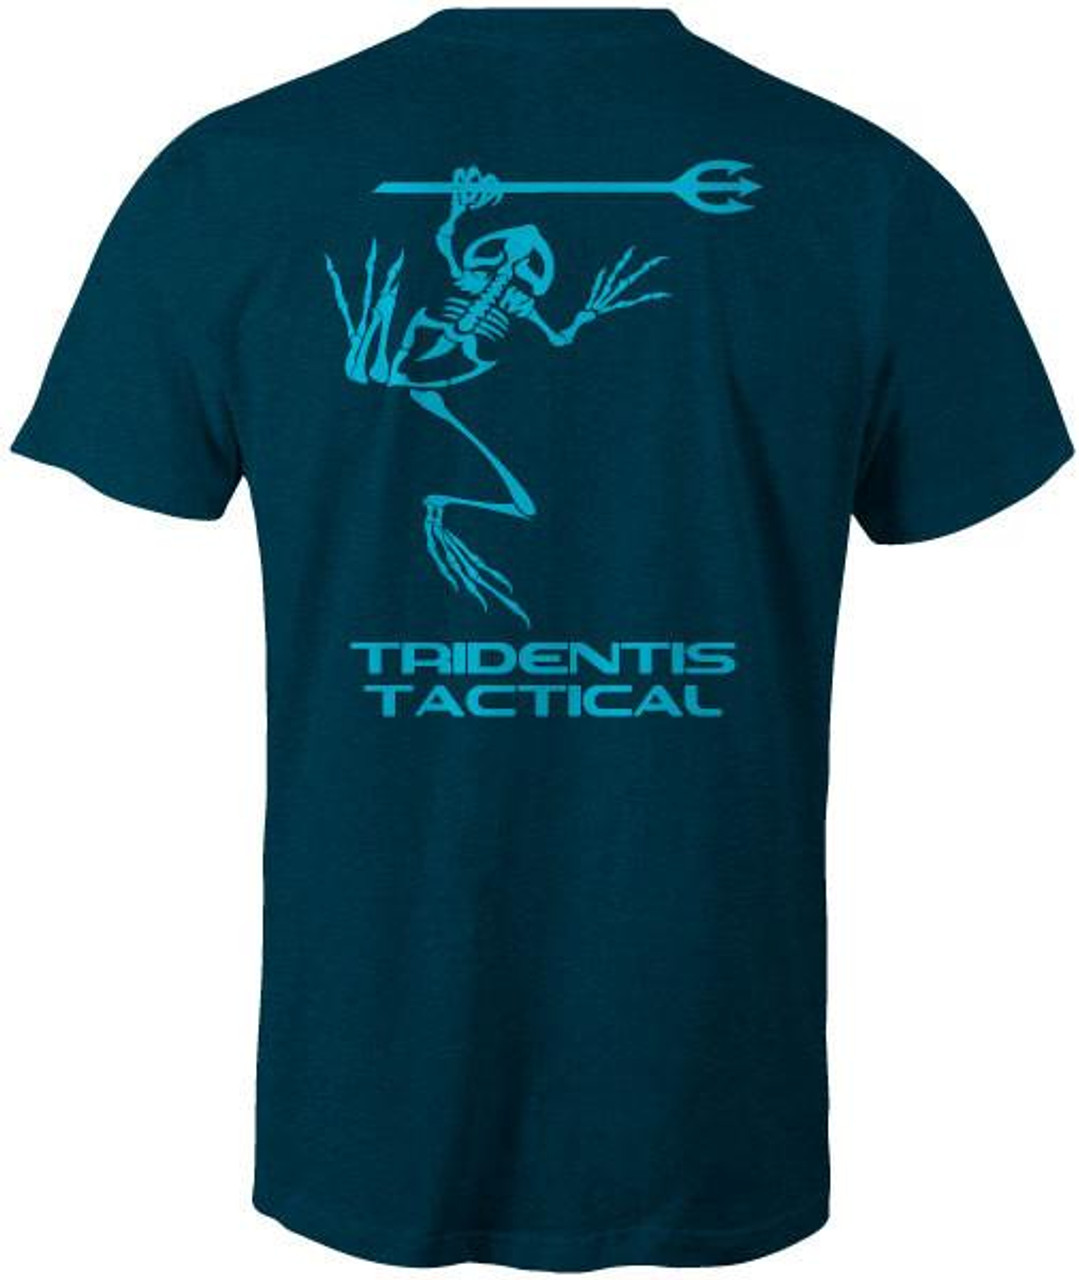 Tridentis Tactical Heather Navy Men's T-Shirt Brite Blue Logo and Lettering